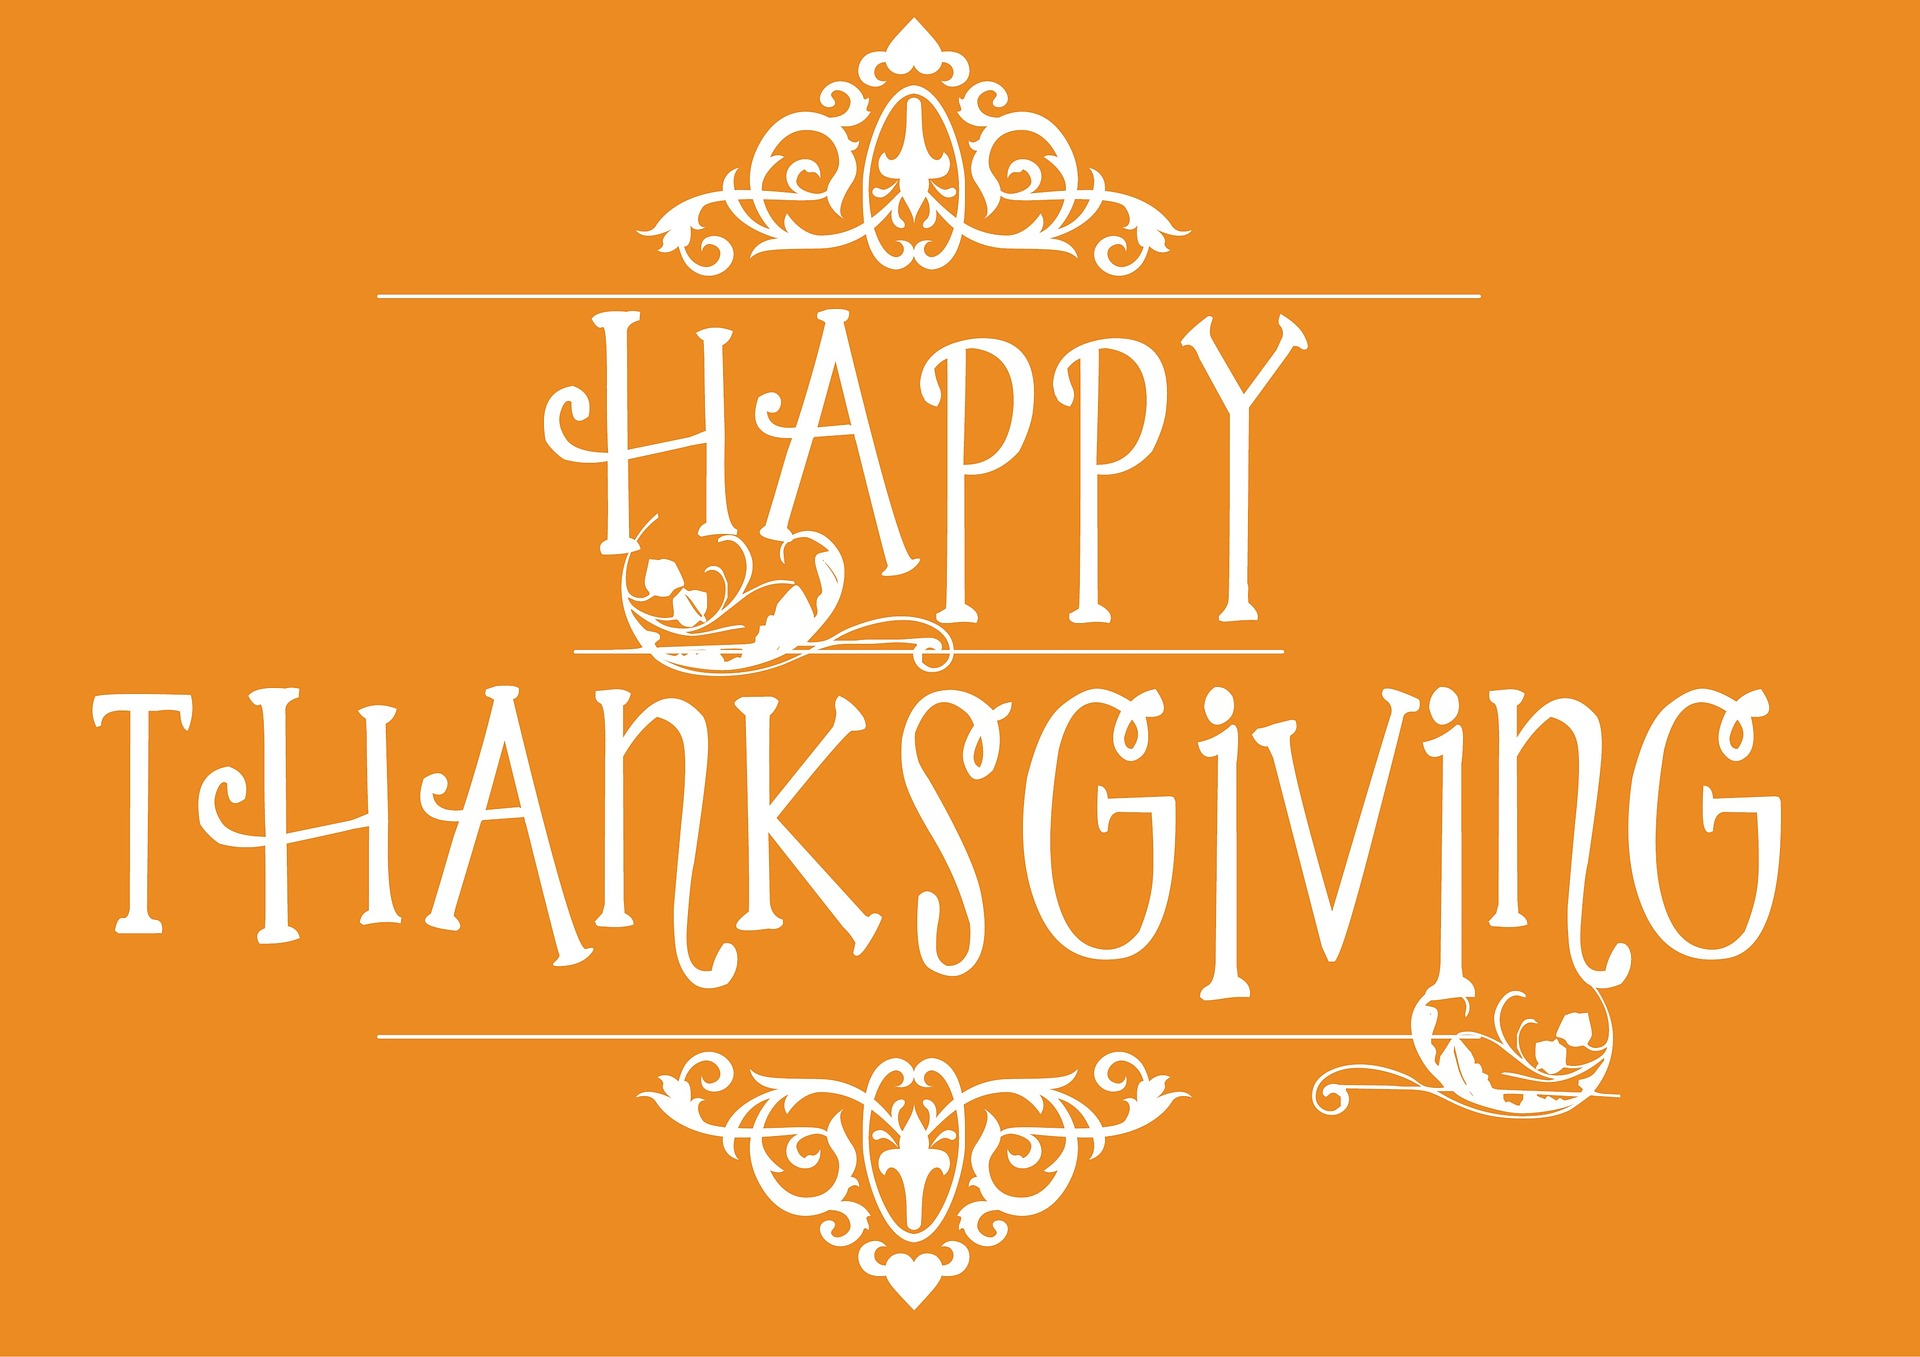 Happy Thanksgiving and Giving Thanks